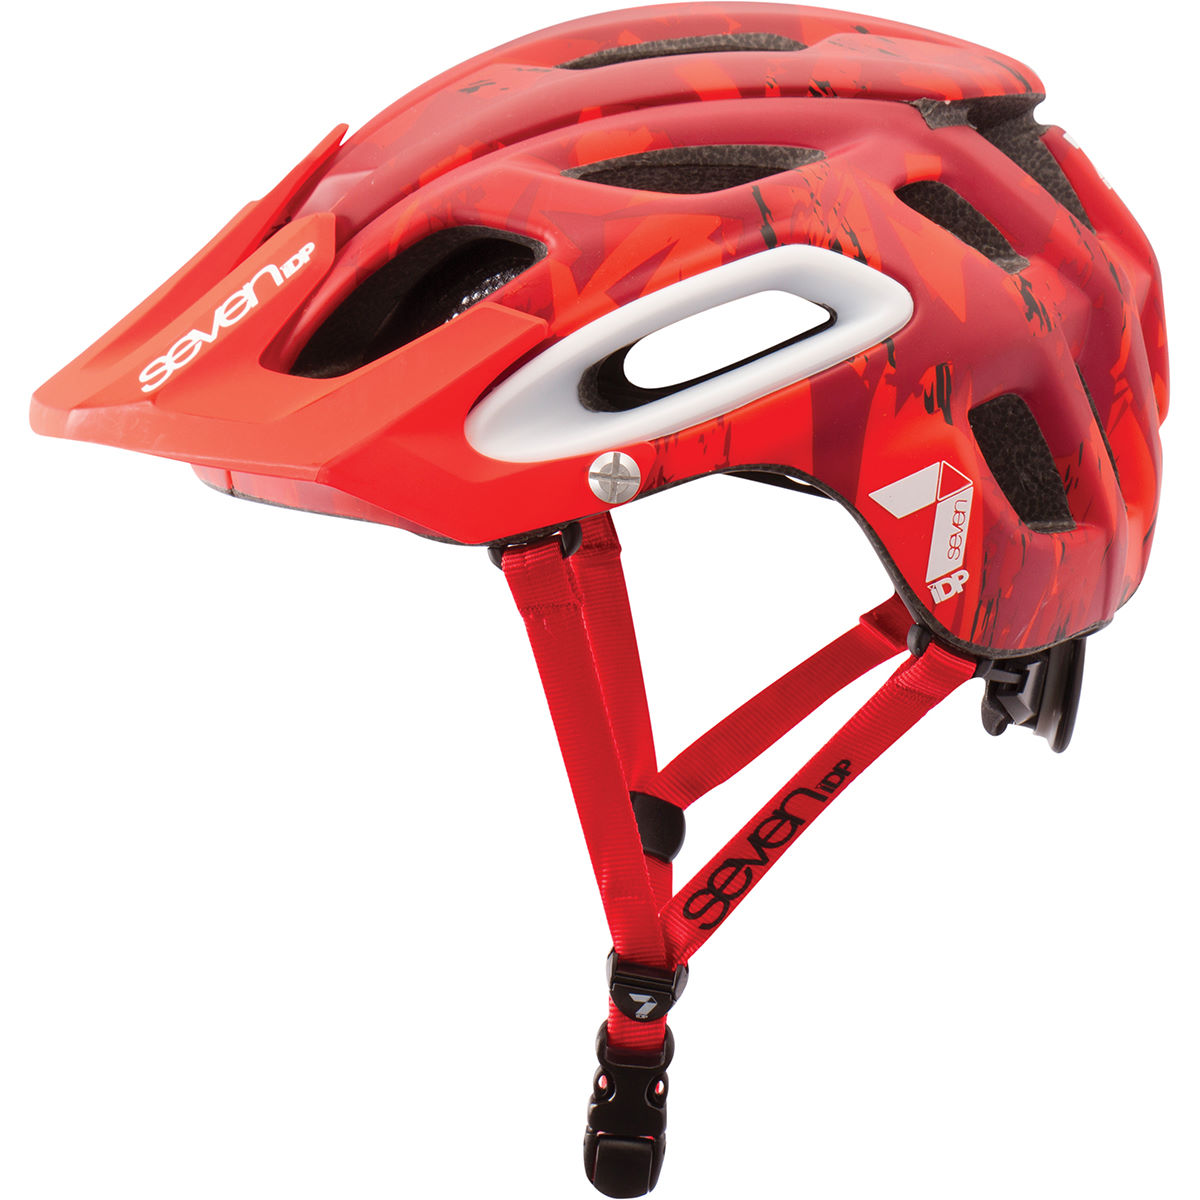 Casque 7 iDP M2 - M/L Matt Red Camo Casques VTT